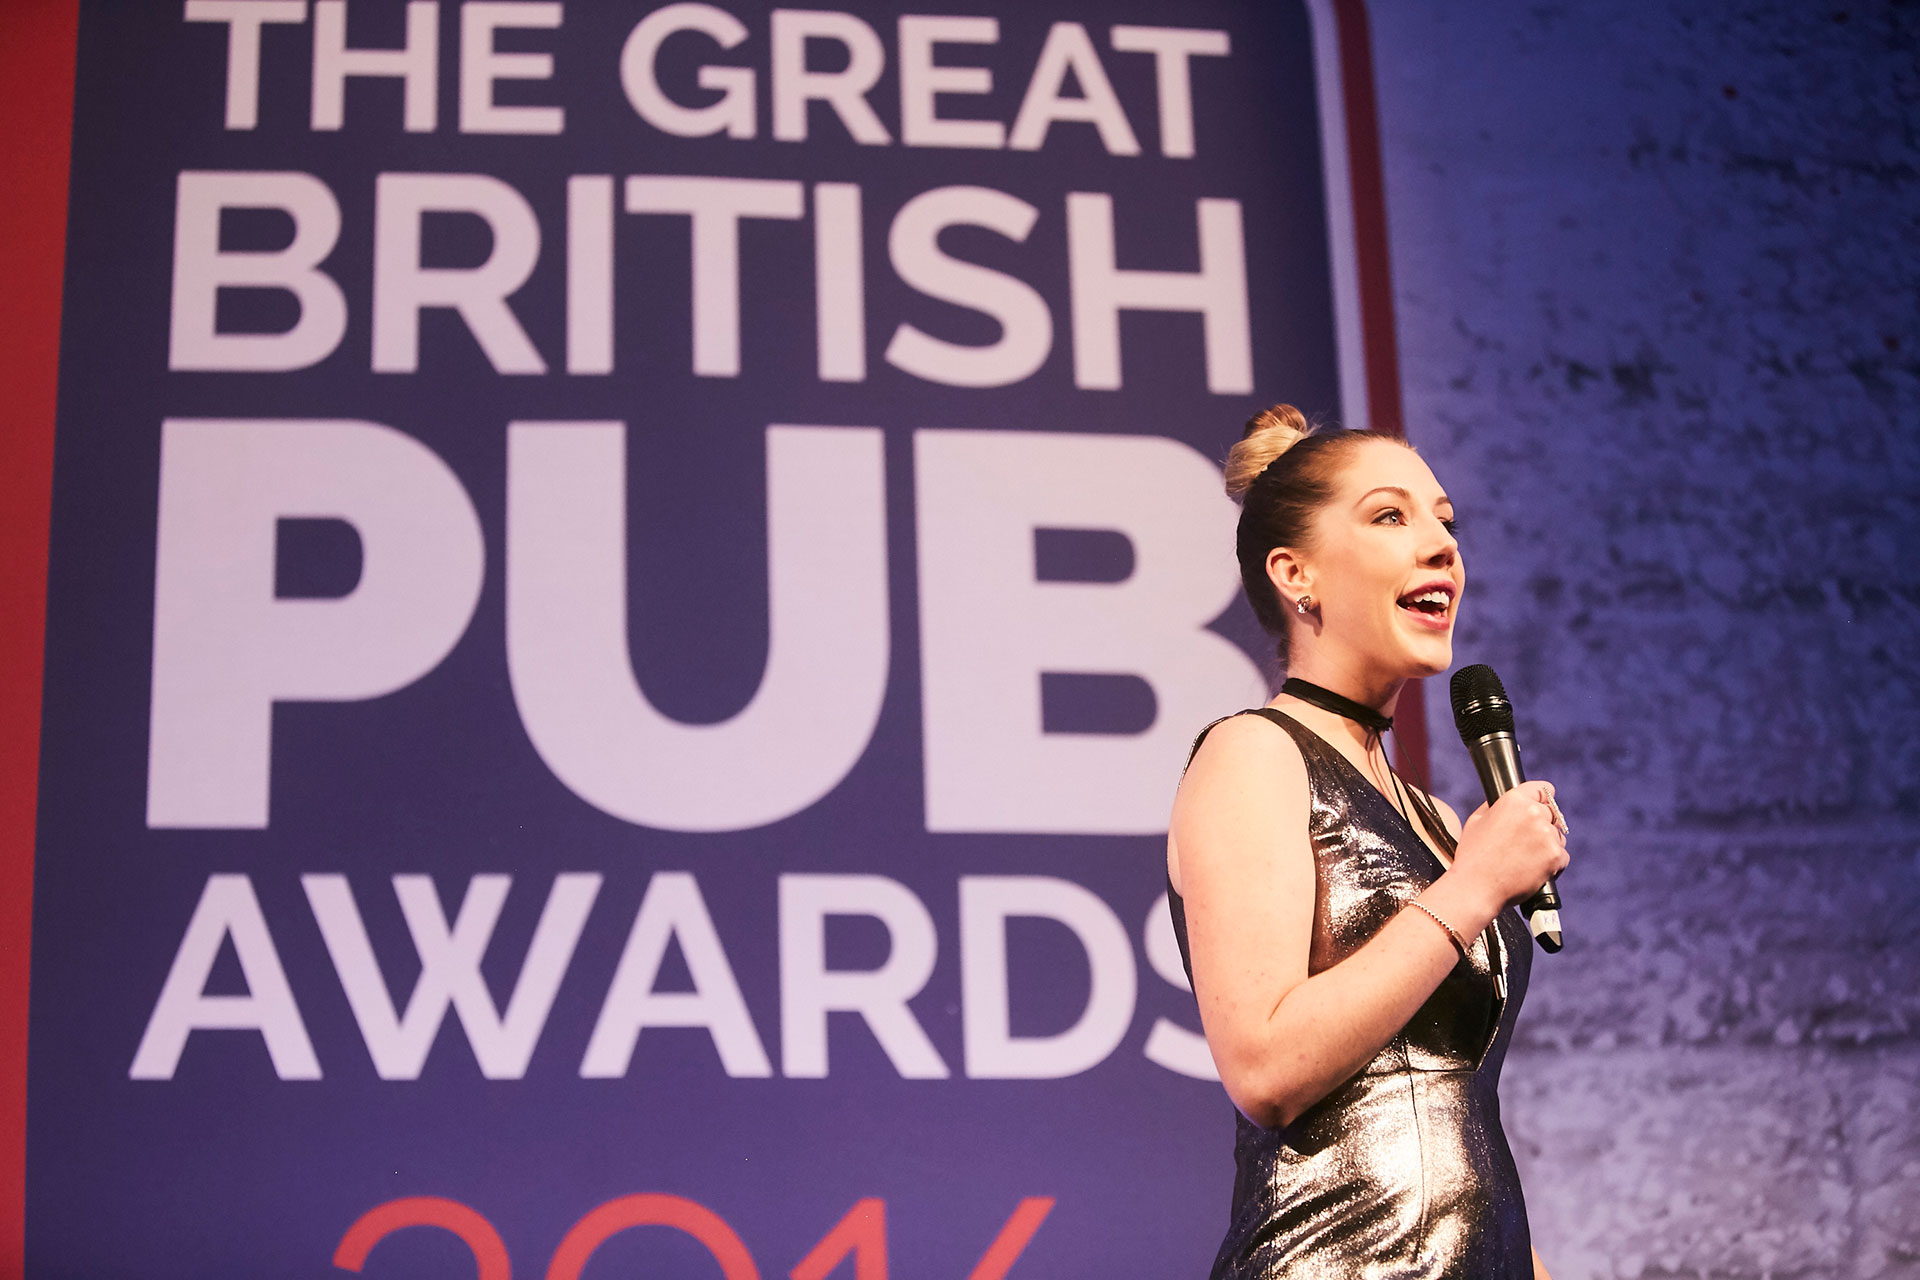 The Great British Pub Award